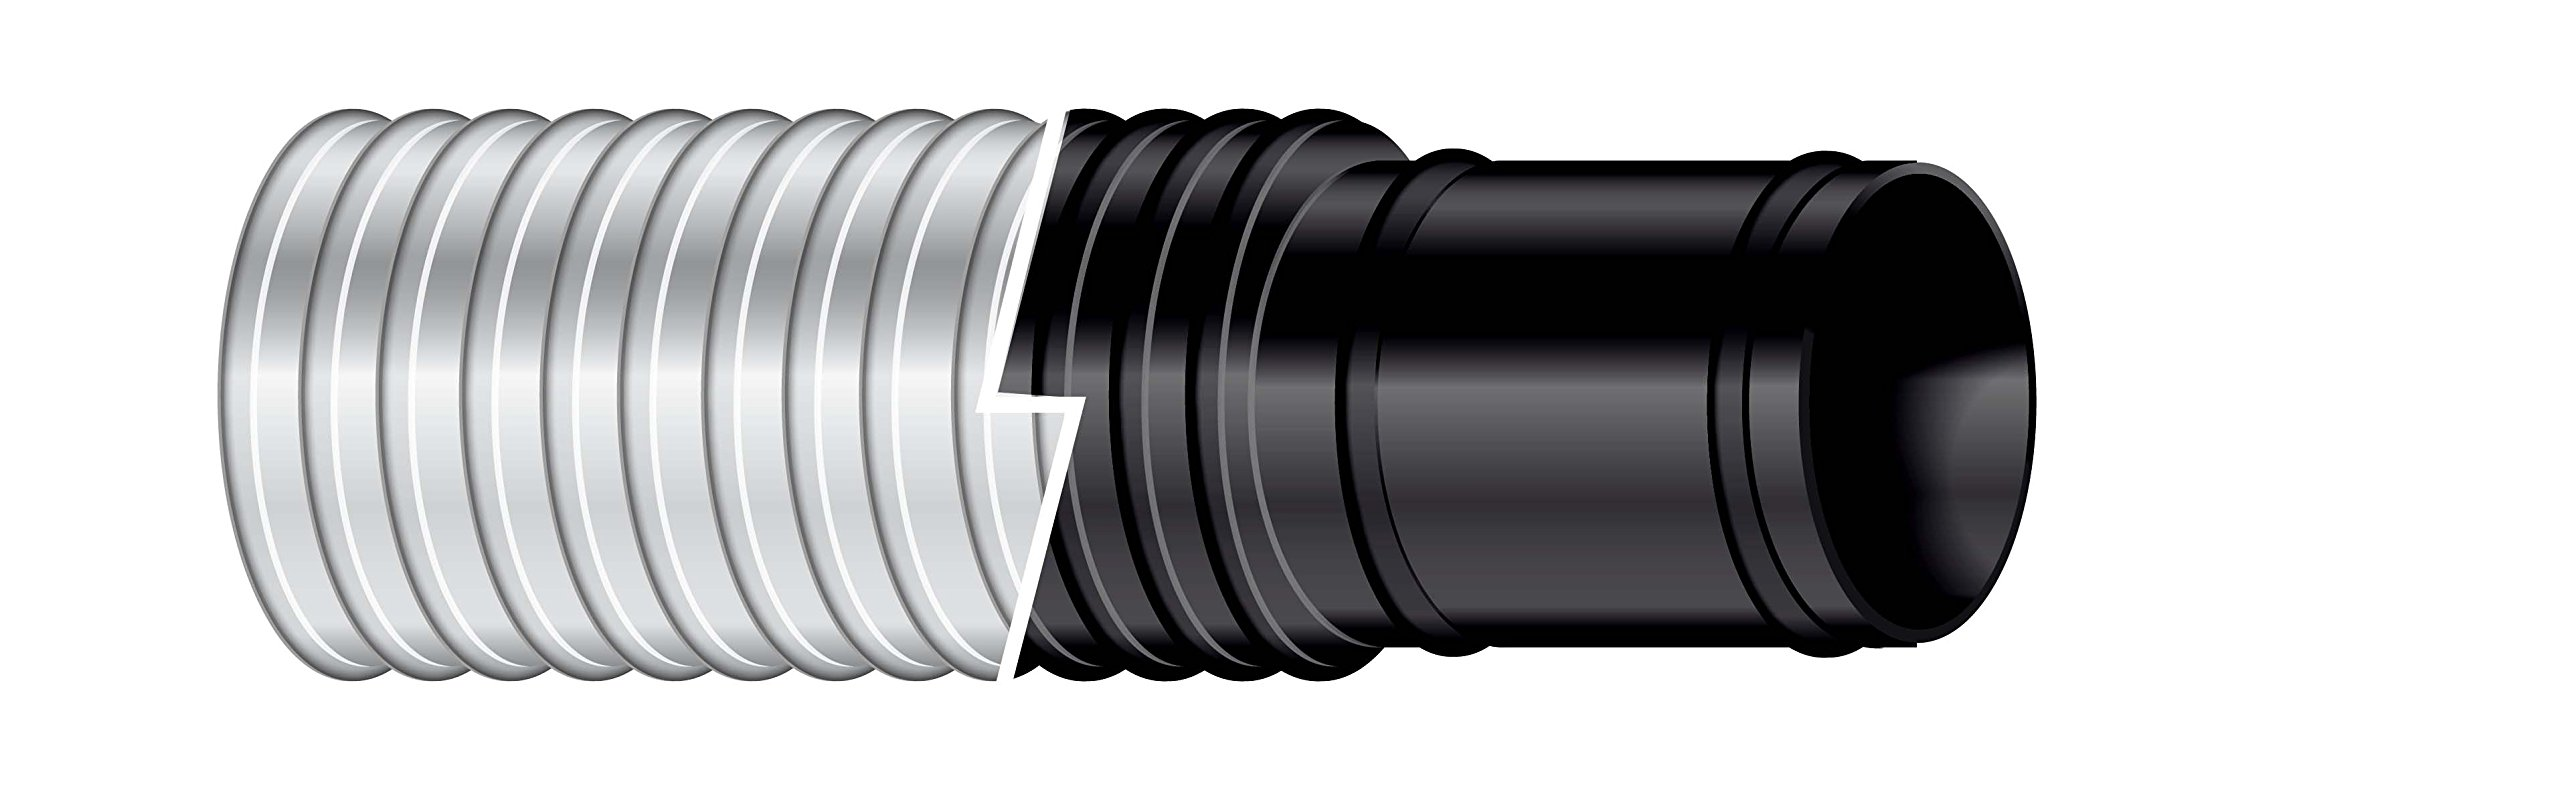 Sierra International Black 3/4 Inch x 6 Foot Sierra 116-120-0341B Shields Bilgeflex Hose-3/4 X 6' by Sierra International